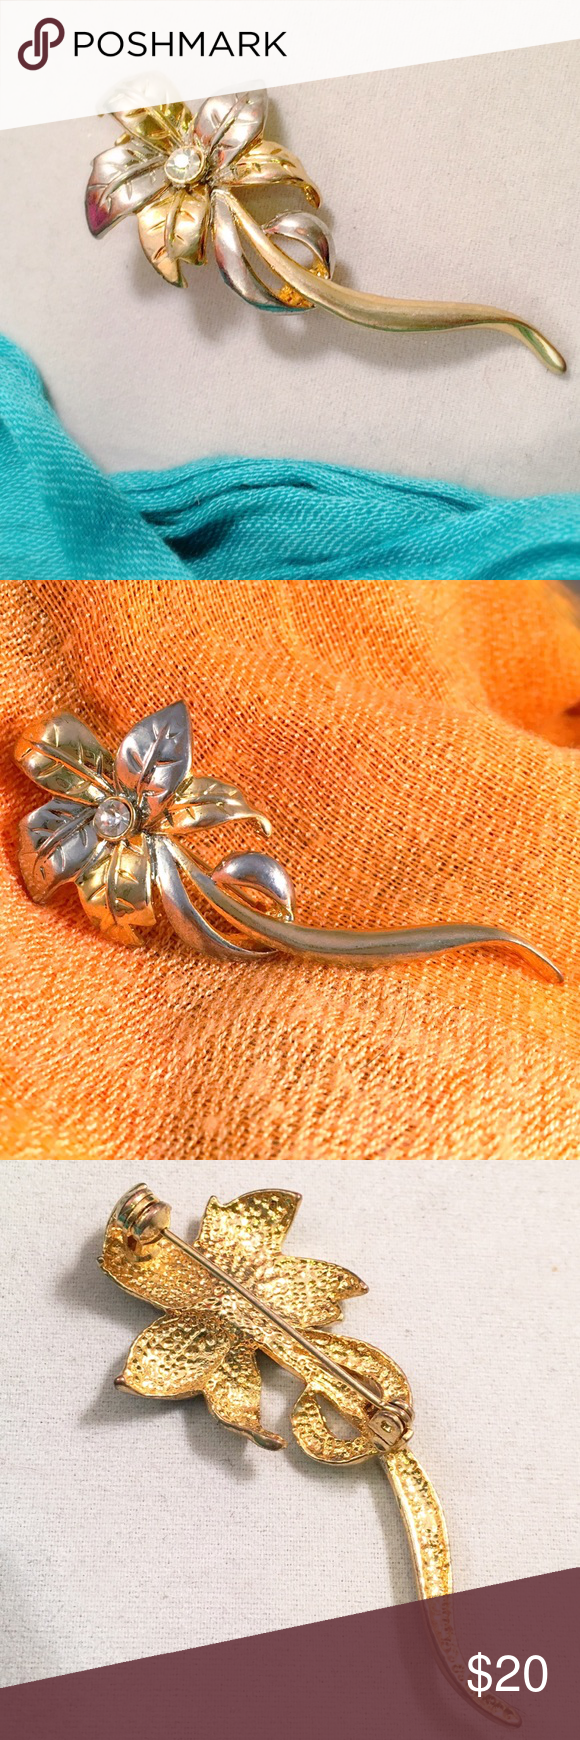 "VINTAGE Flower Two Tone Brooch Simple. Elegant. Bright center rhinestone. Etched silver tone and gold tone details in flower. Approx 2.5"" long. Vintage Jewelry Brooches"